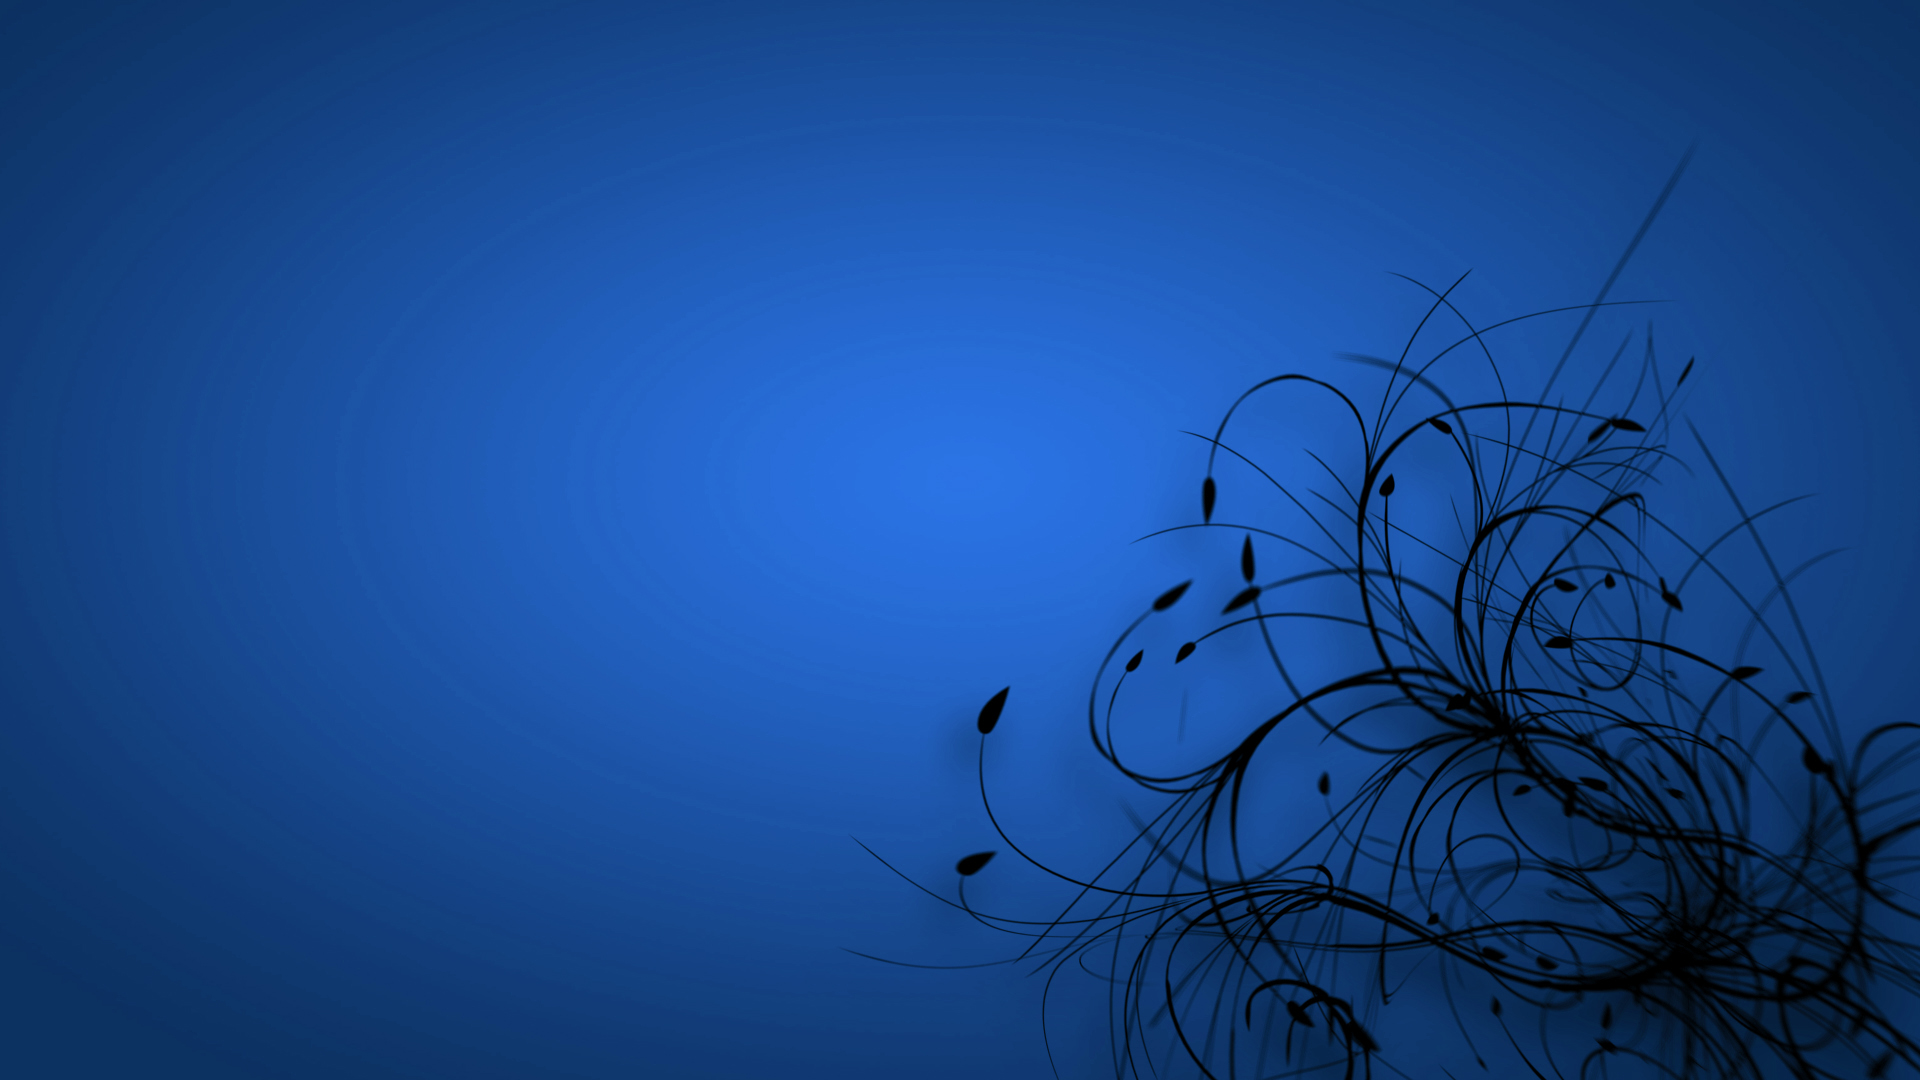 Blue Color Desktop Background   Wallpaper High Definition High 1920x1080